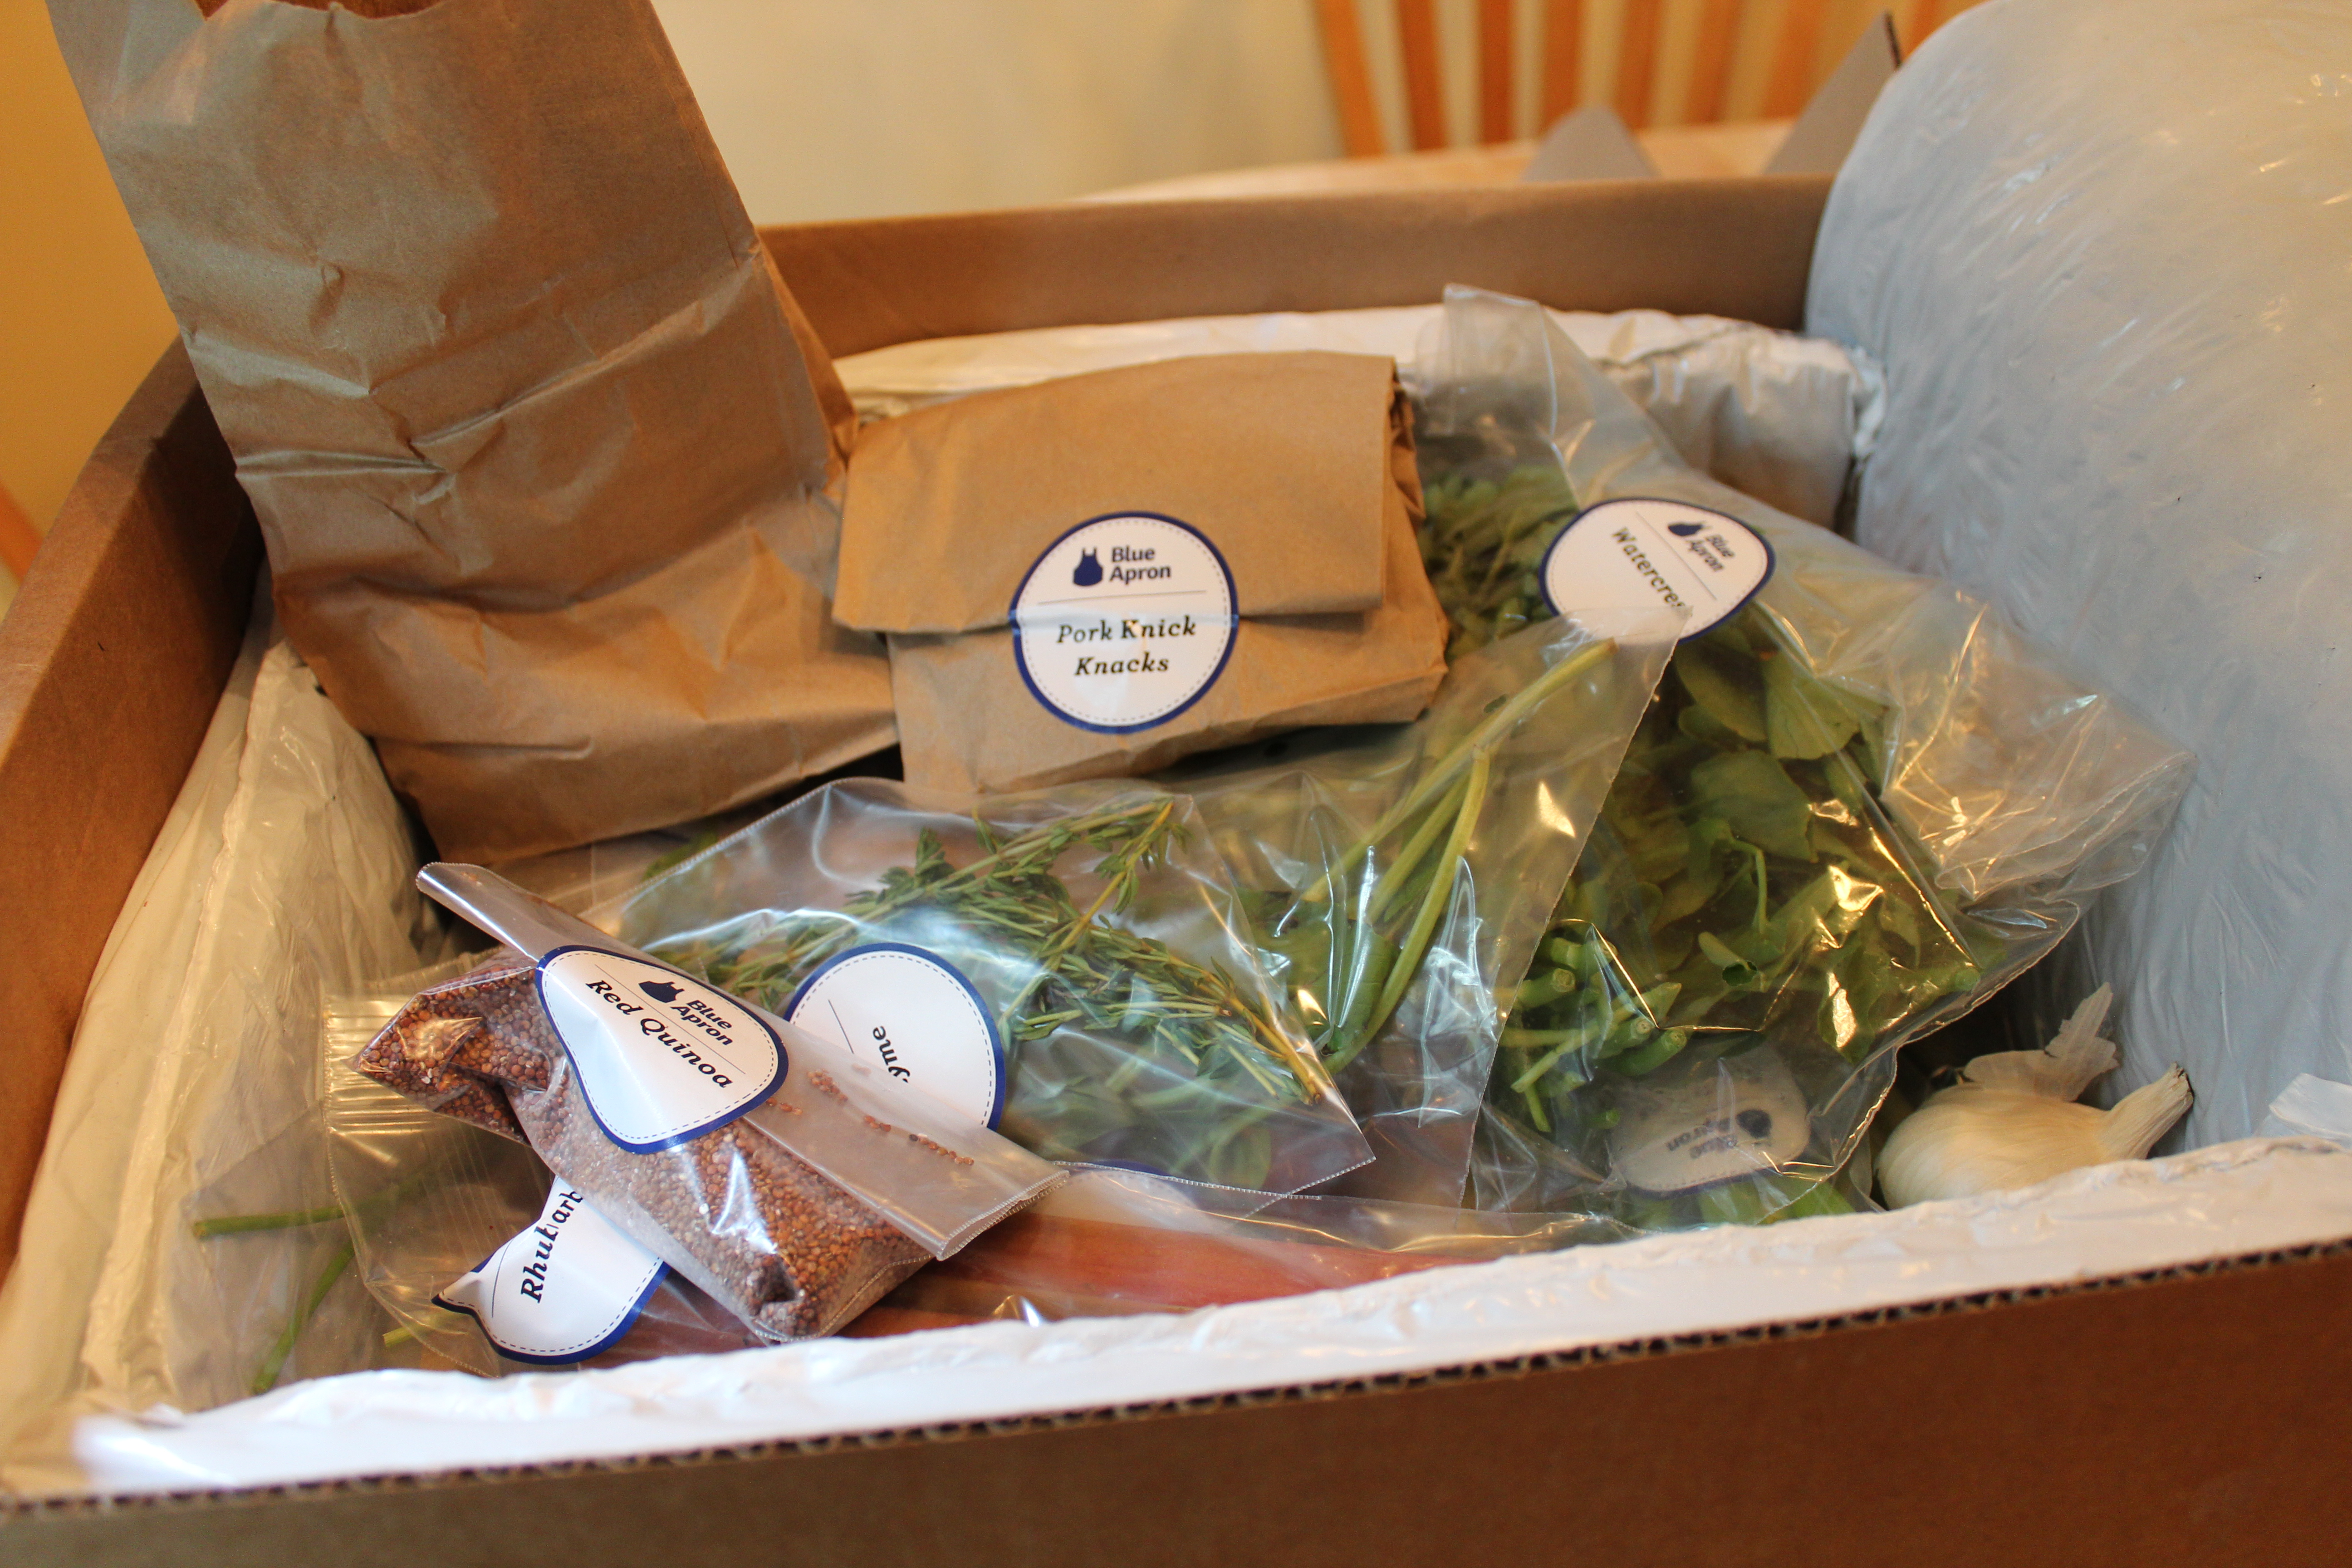 Blue apron packaging waste - The Three Dishes Included In Our Box Were